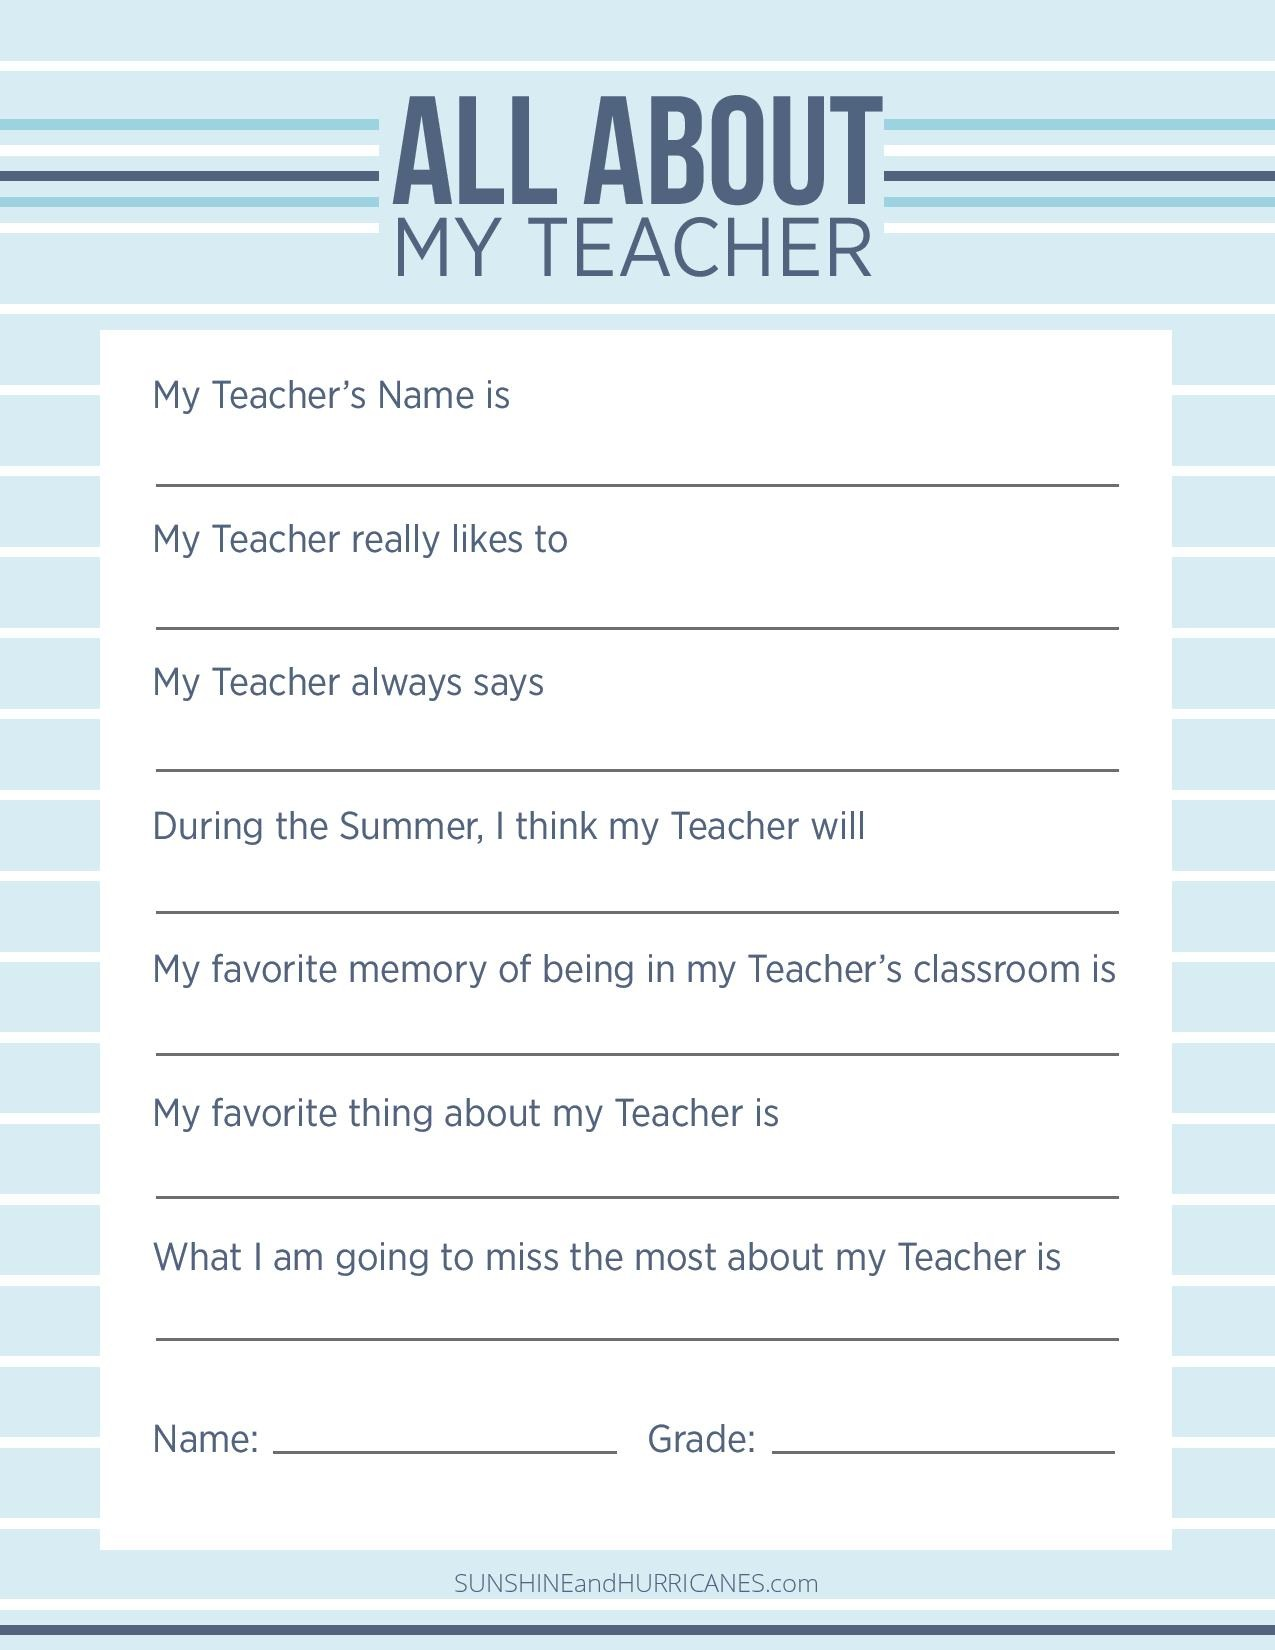 This Teacher Appreciation Questionnaire would make the perfect teacher gift for end of year or any occasion. SunshineandHurricanes.com